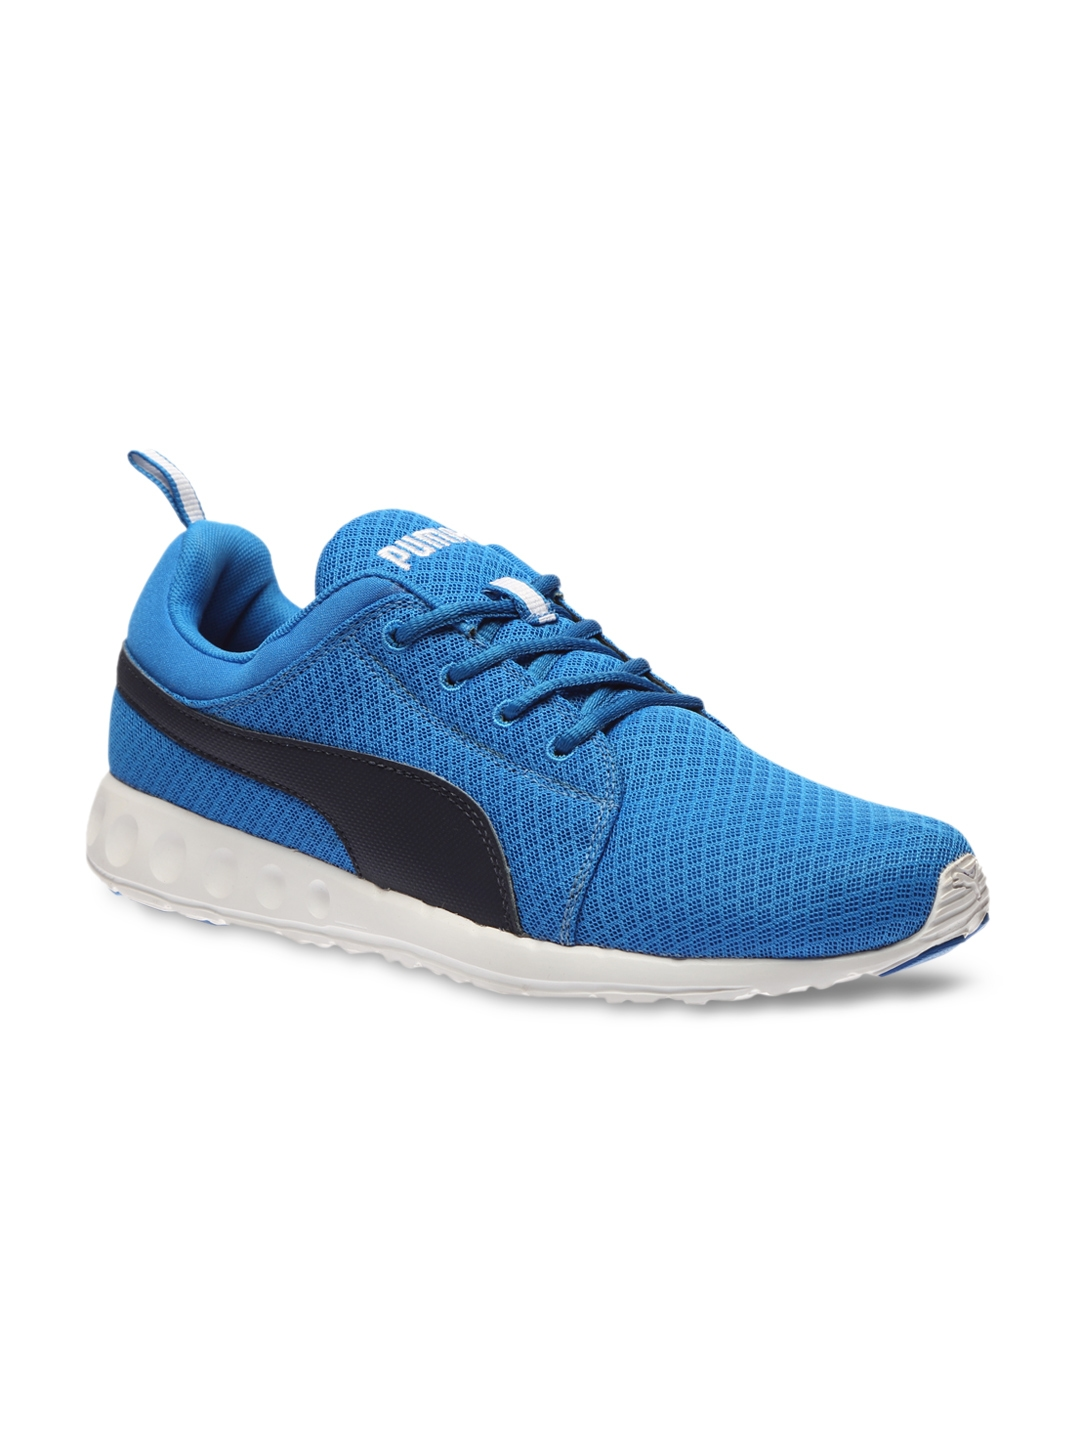 a6690ace5 Buy PUMA Men Blue Carson Runner IDP H2T Running Shoes - Sports Shoes ...